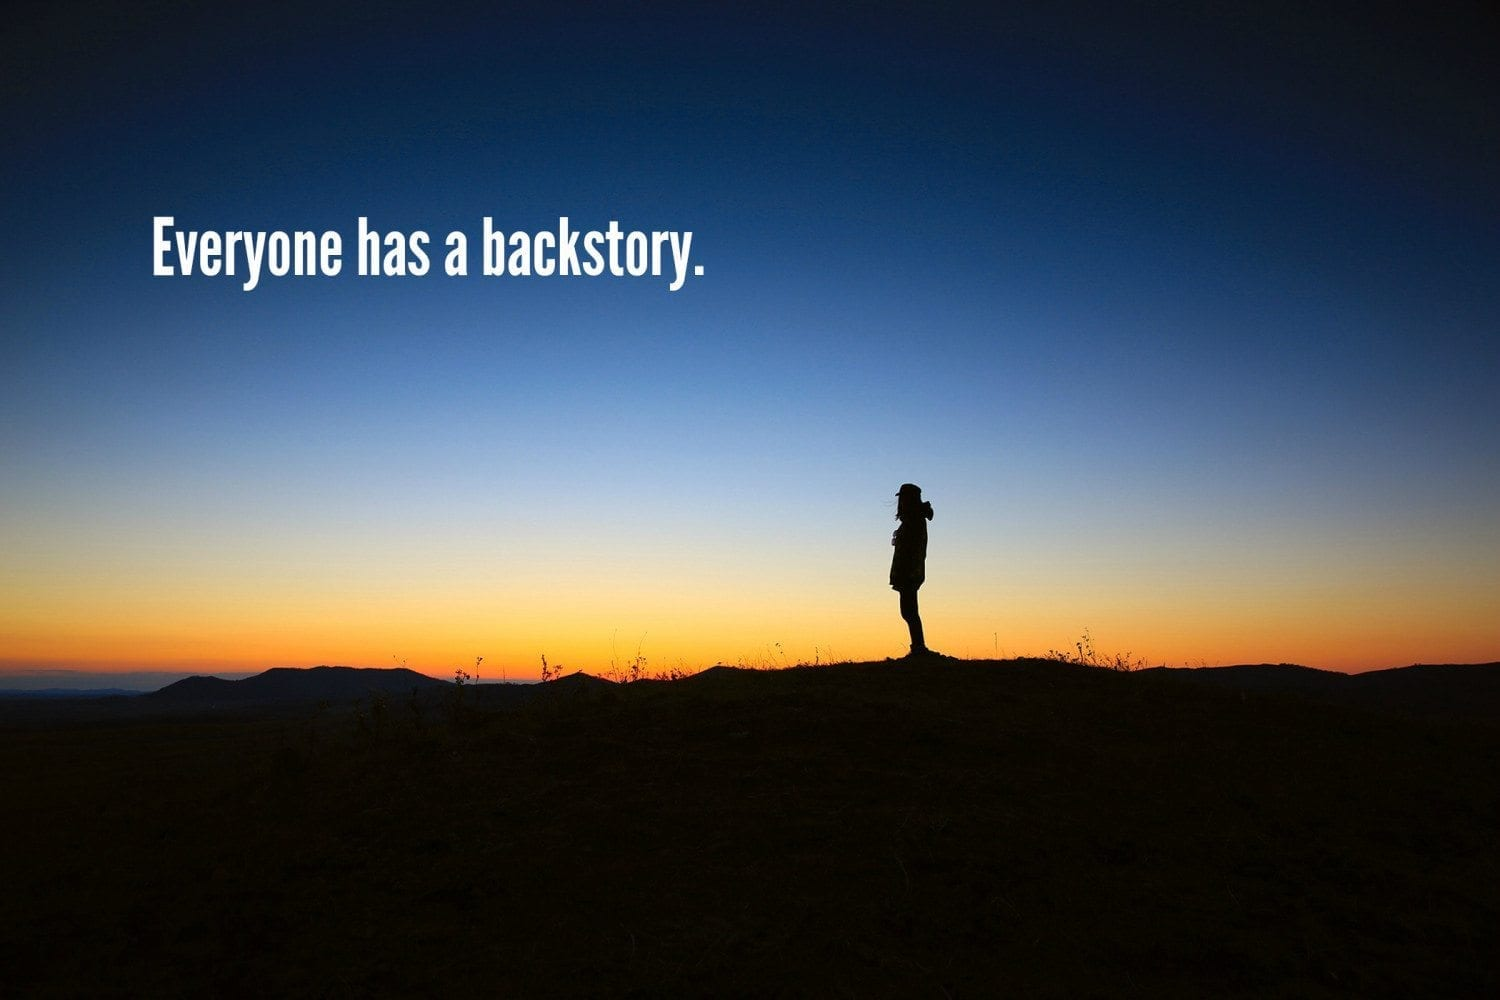 Everyone Has A Backstory